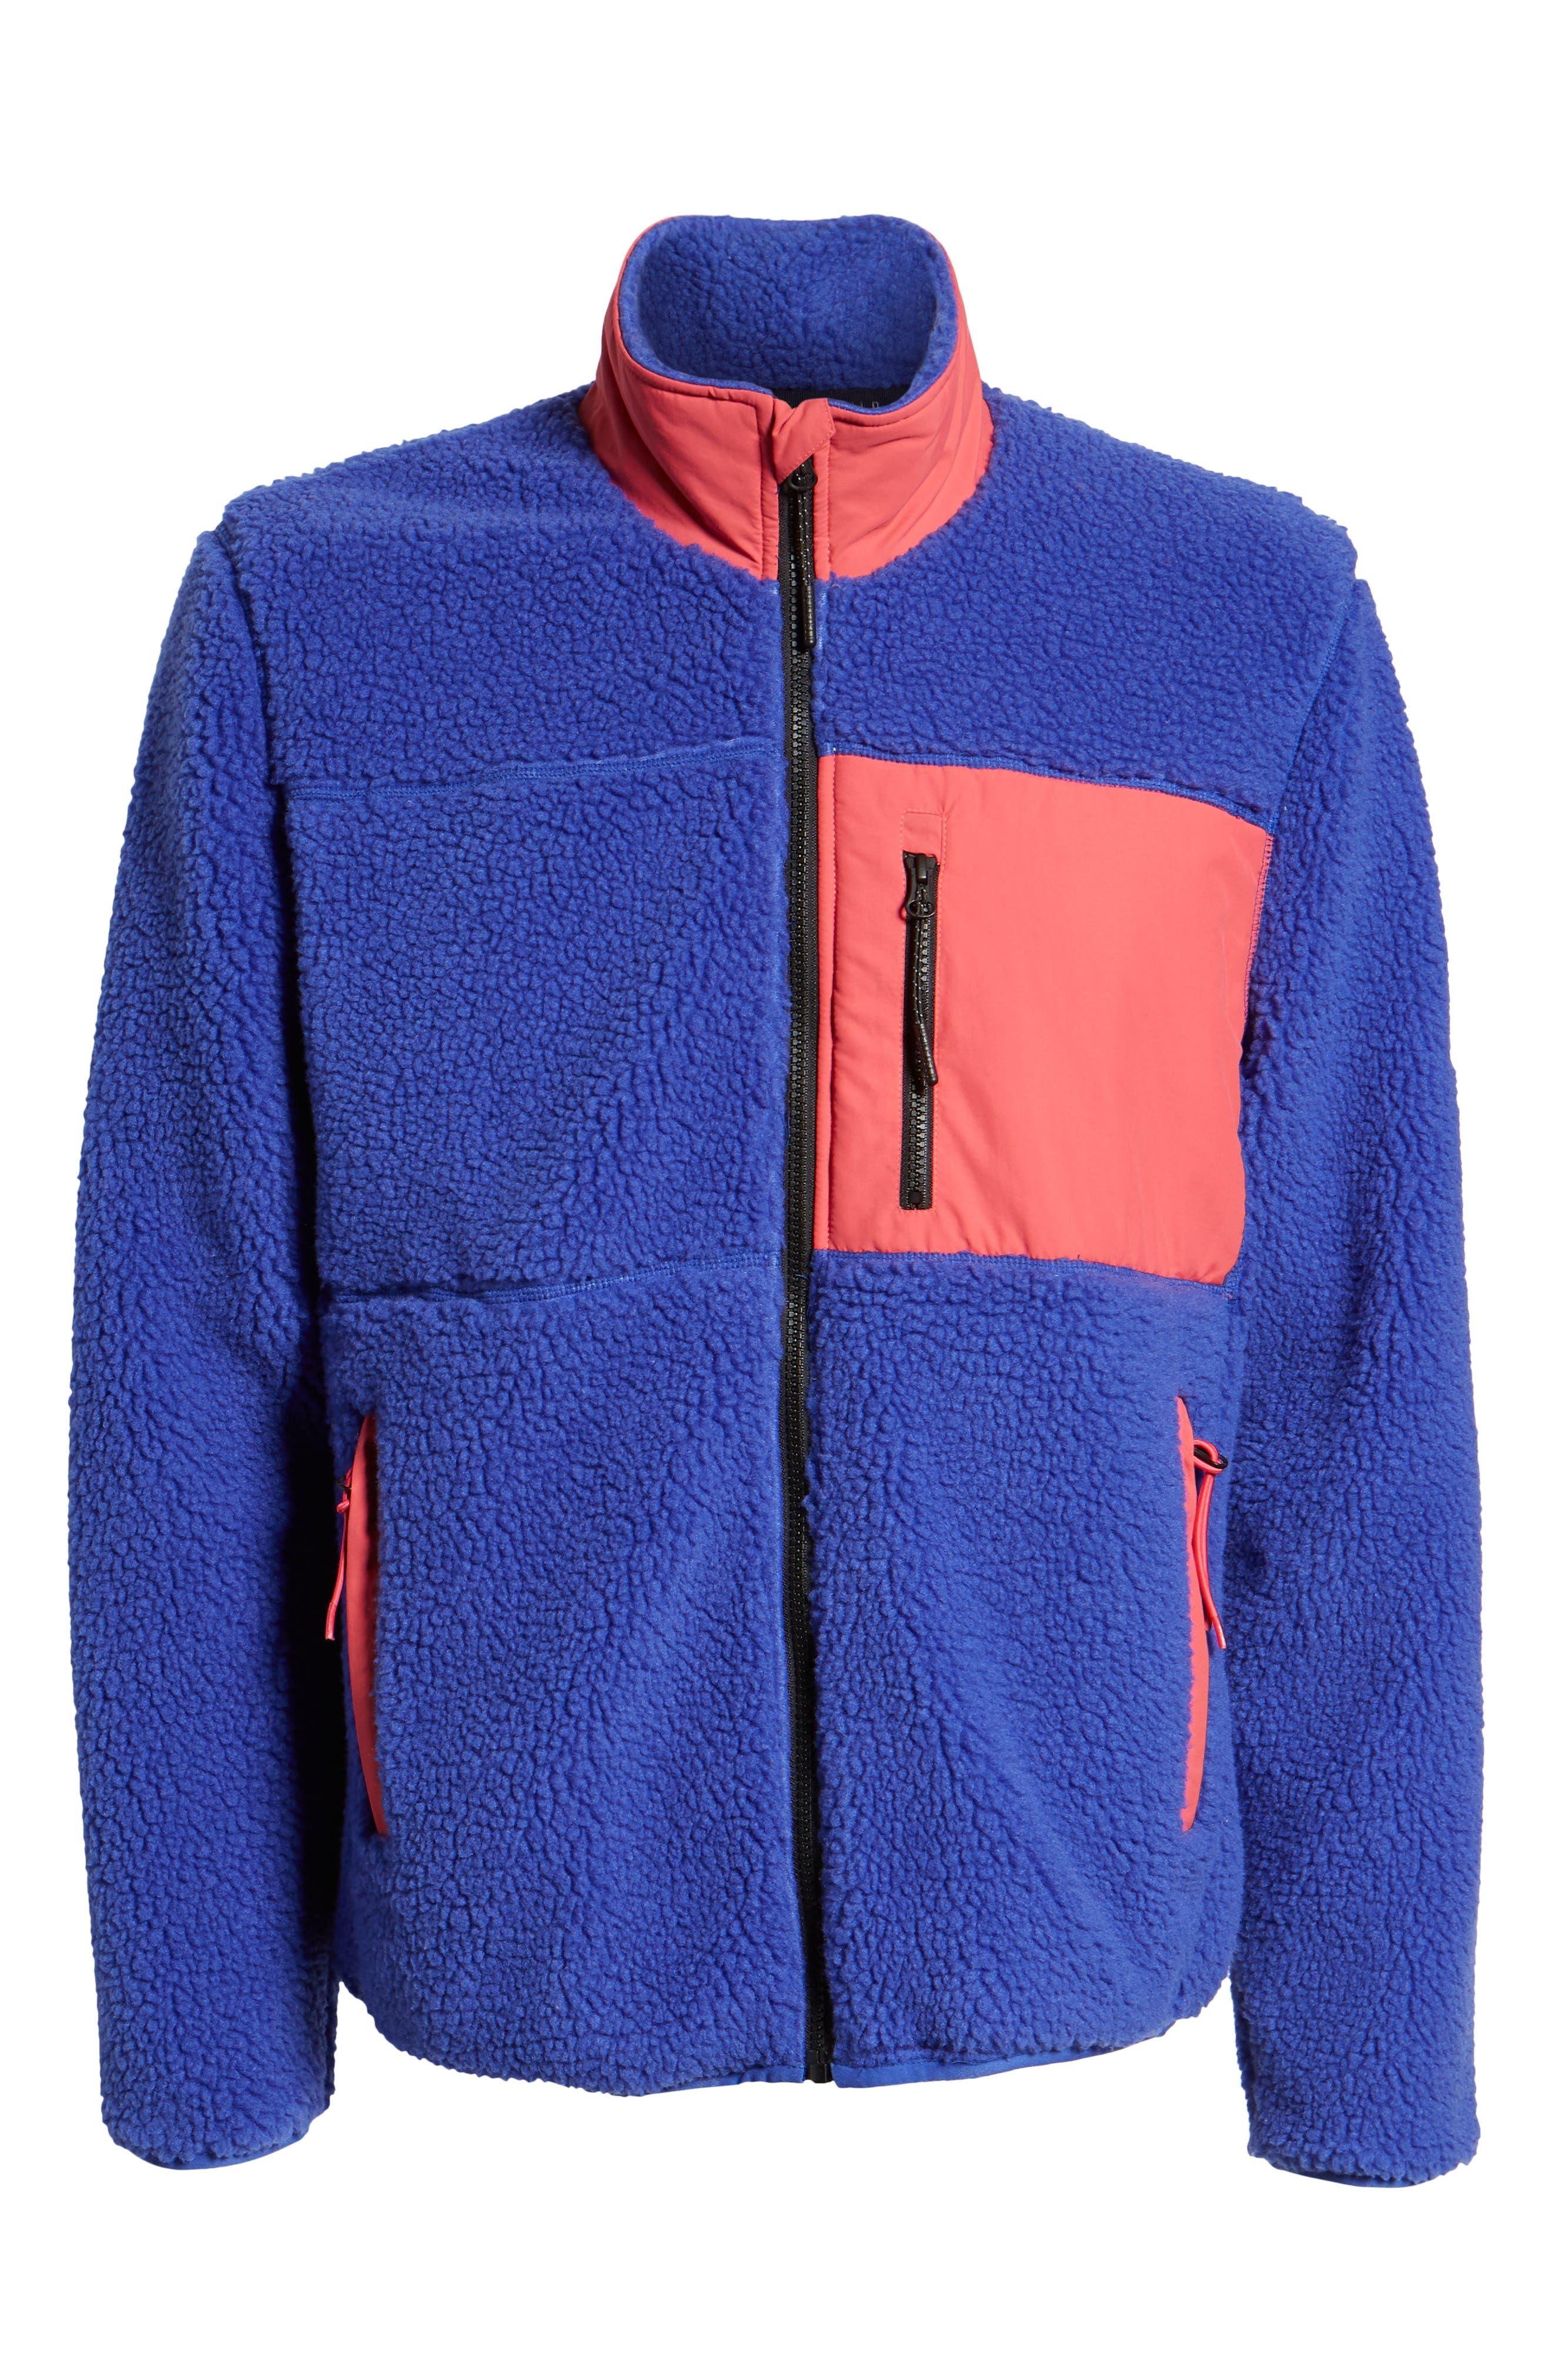 Mattawa Fleece Zip Jacket,                             Alternate thumbnail 7, color,                             ROYAL BLUE